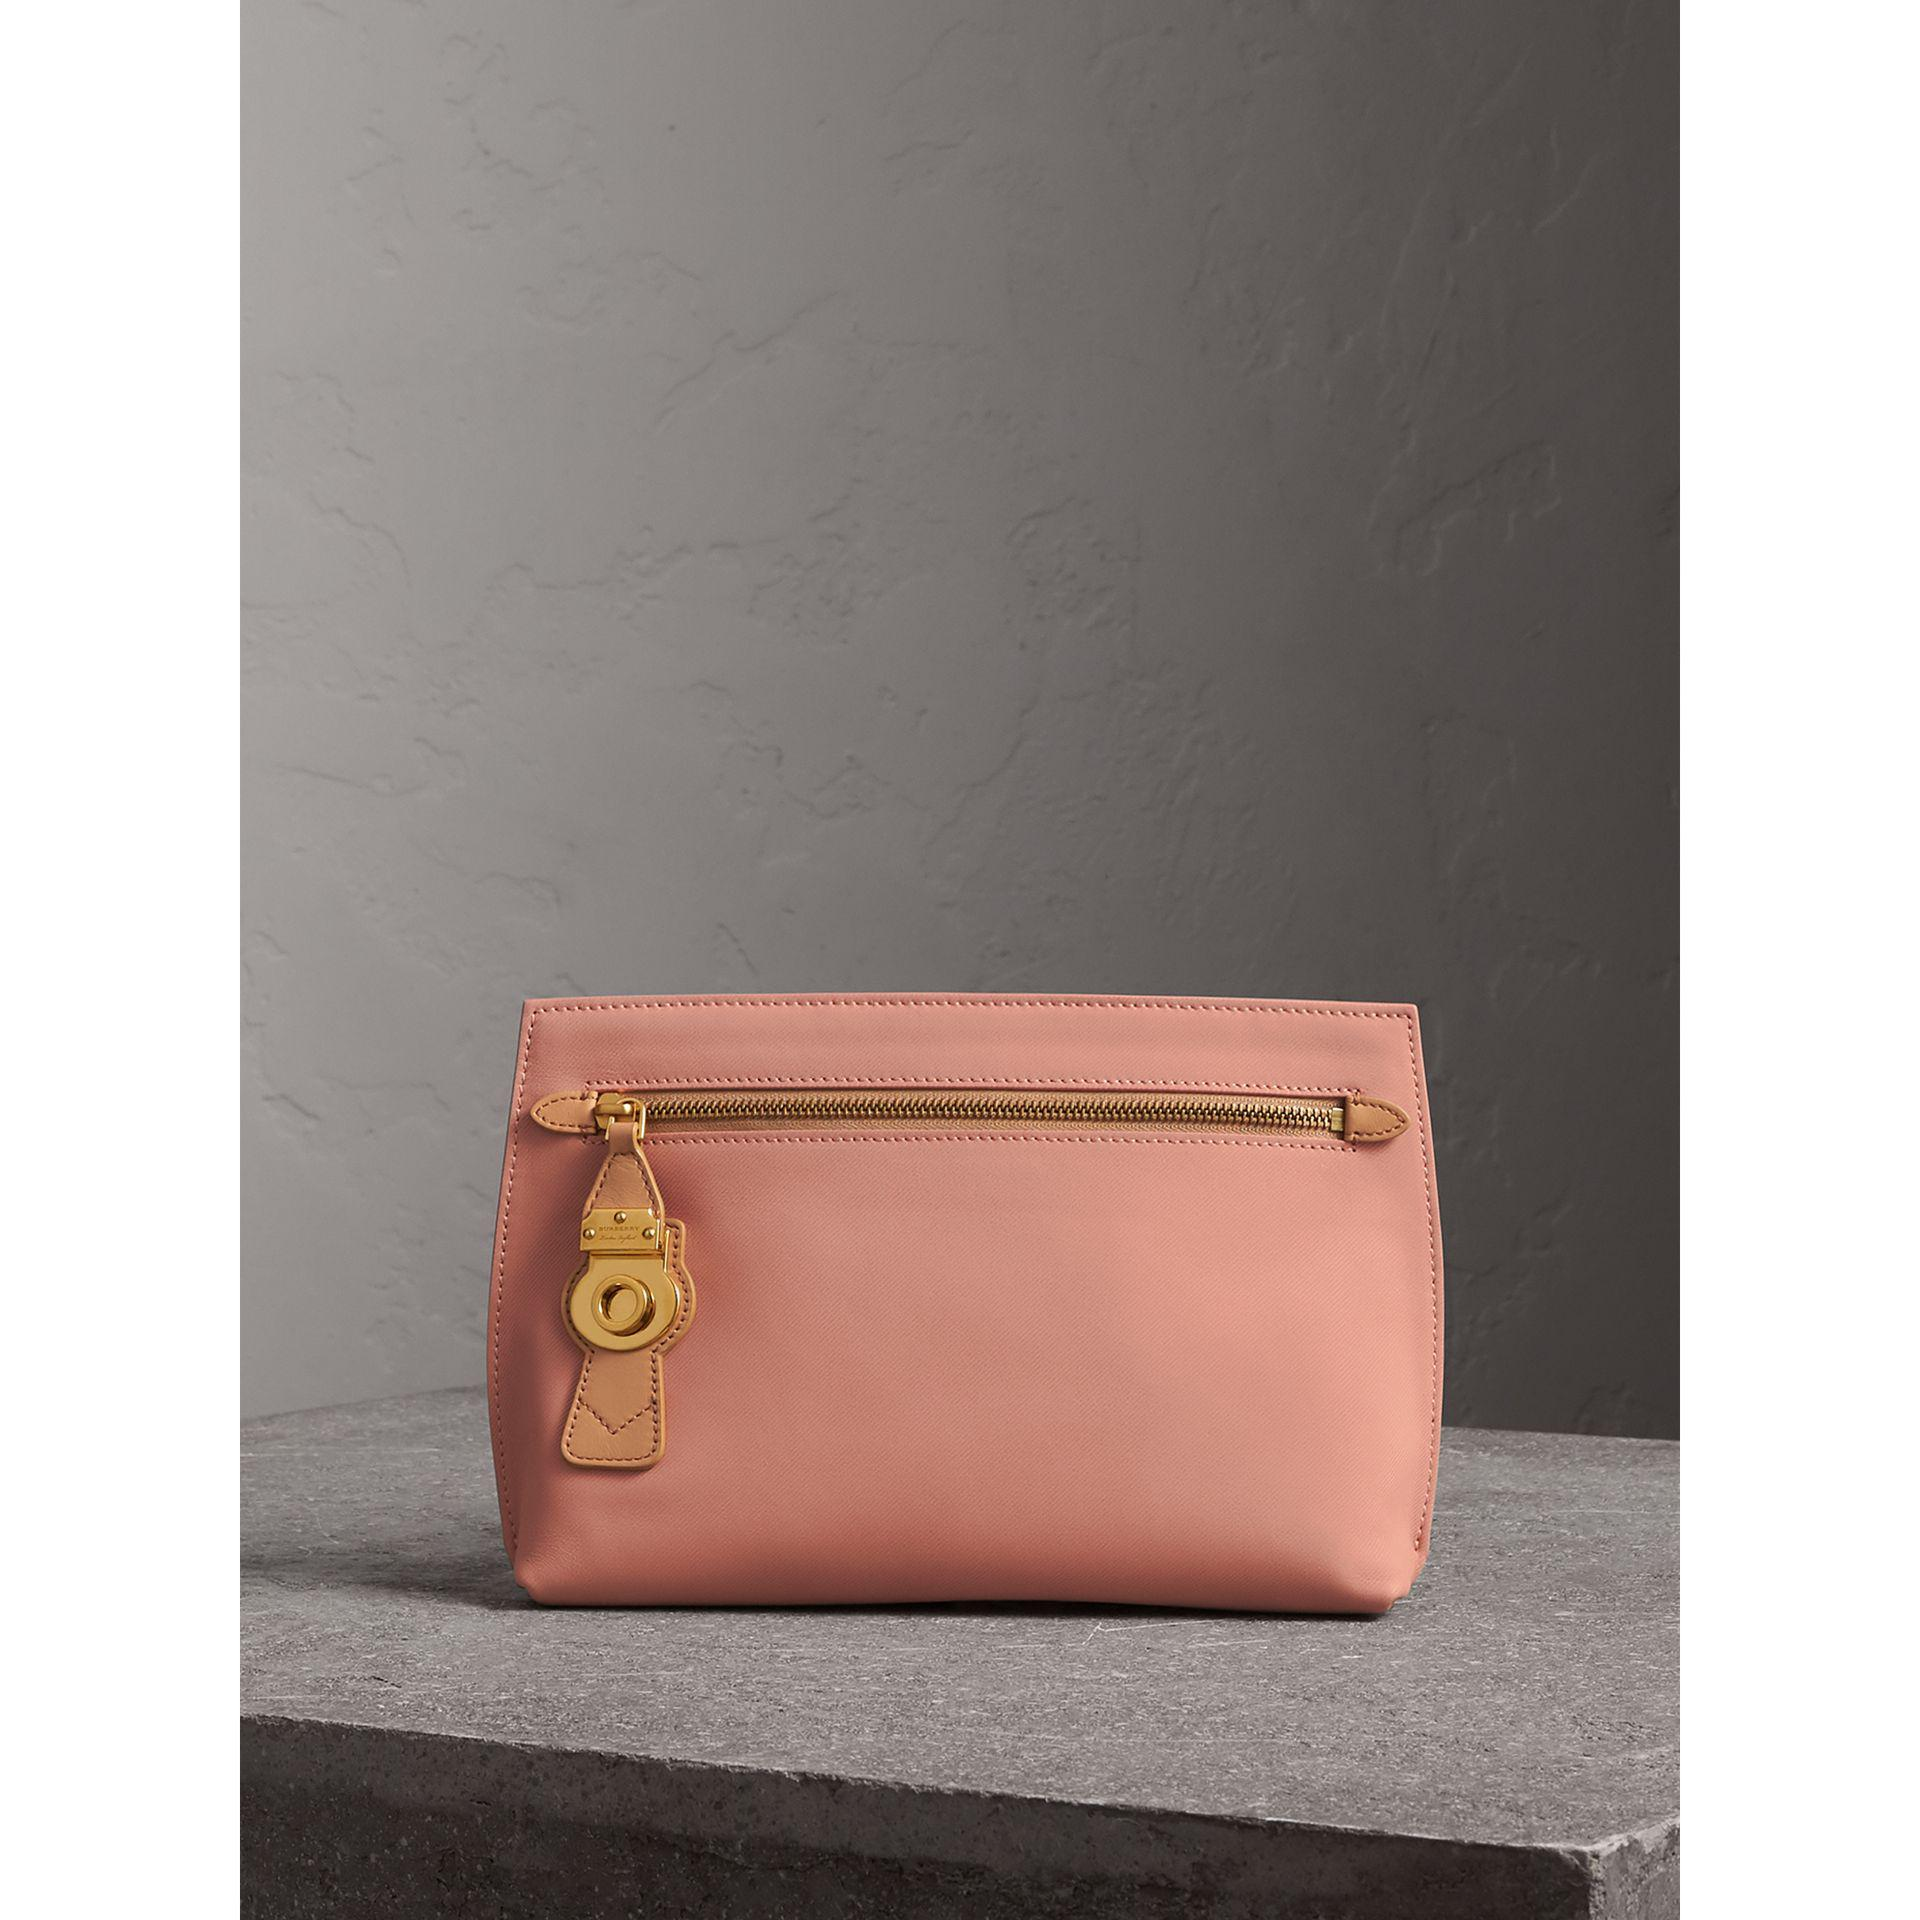 VIDA Statement Clutch - CALIDO COLLECTION/GRC by VIDA